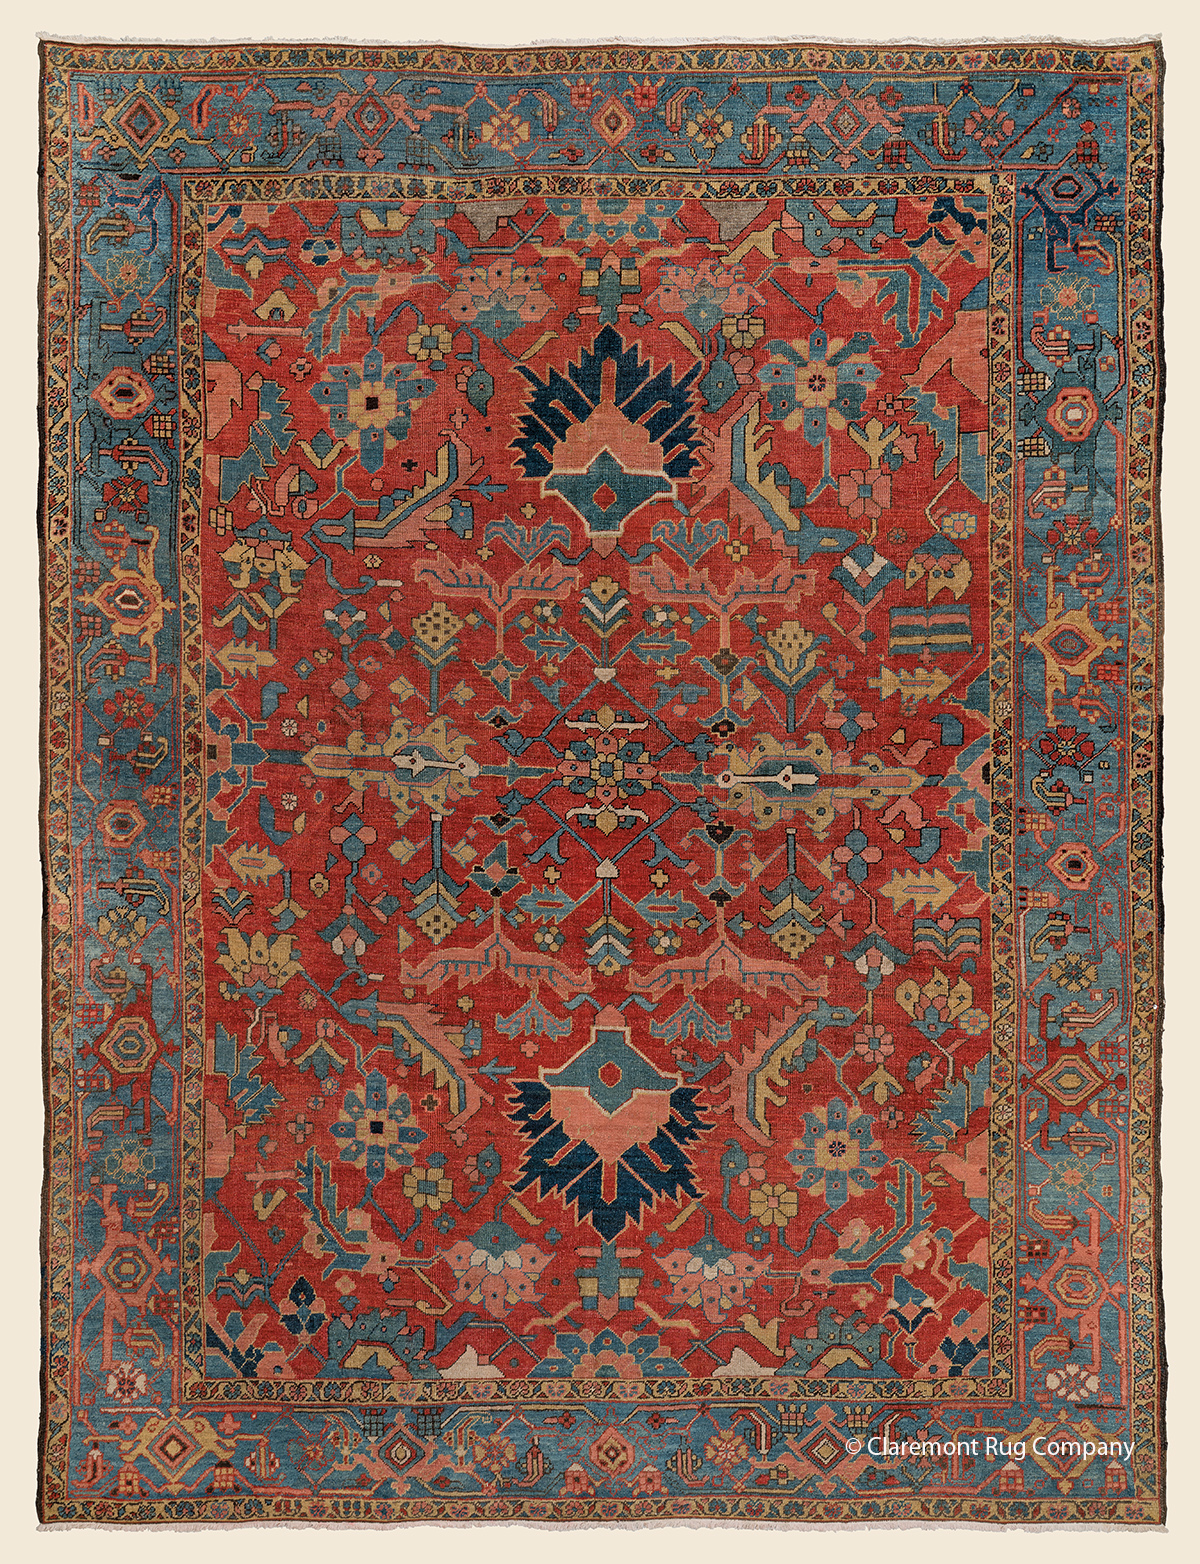 19th century antique Persian Serapi Heriz carpet with stylized botanical devices 9ft x 12ft